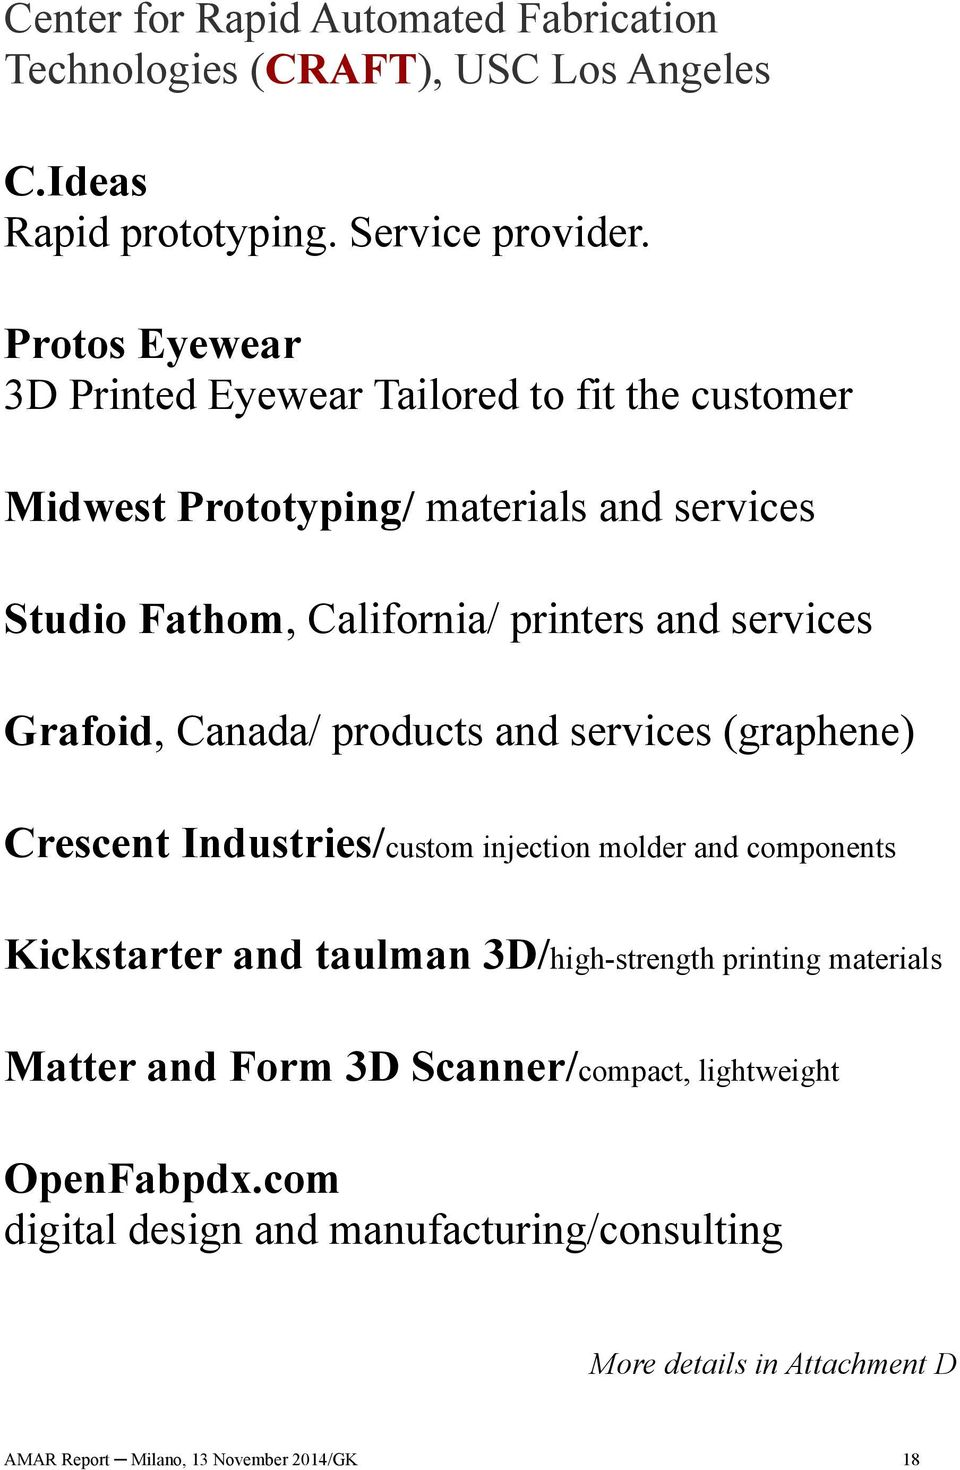 Grafoid, Canada/ products and services (graphene) Crescent Industries/custom injection molder and components Kickstarter and taulman 3D/high-strength